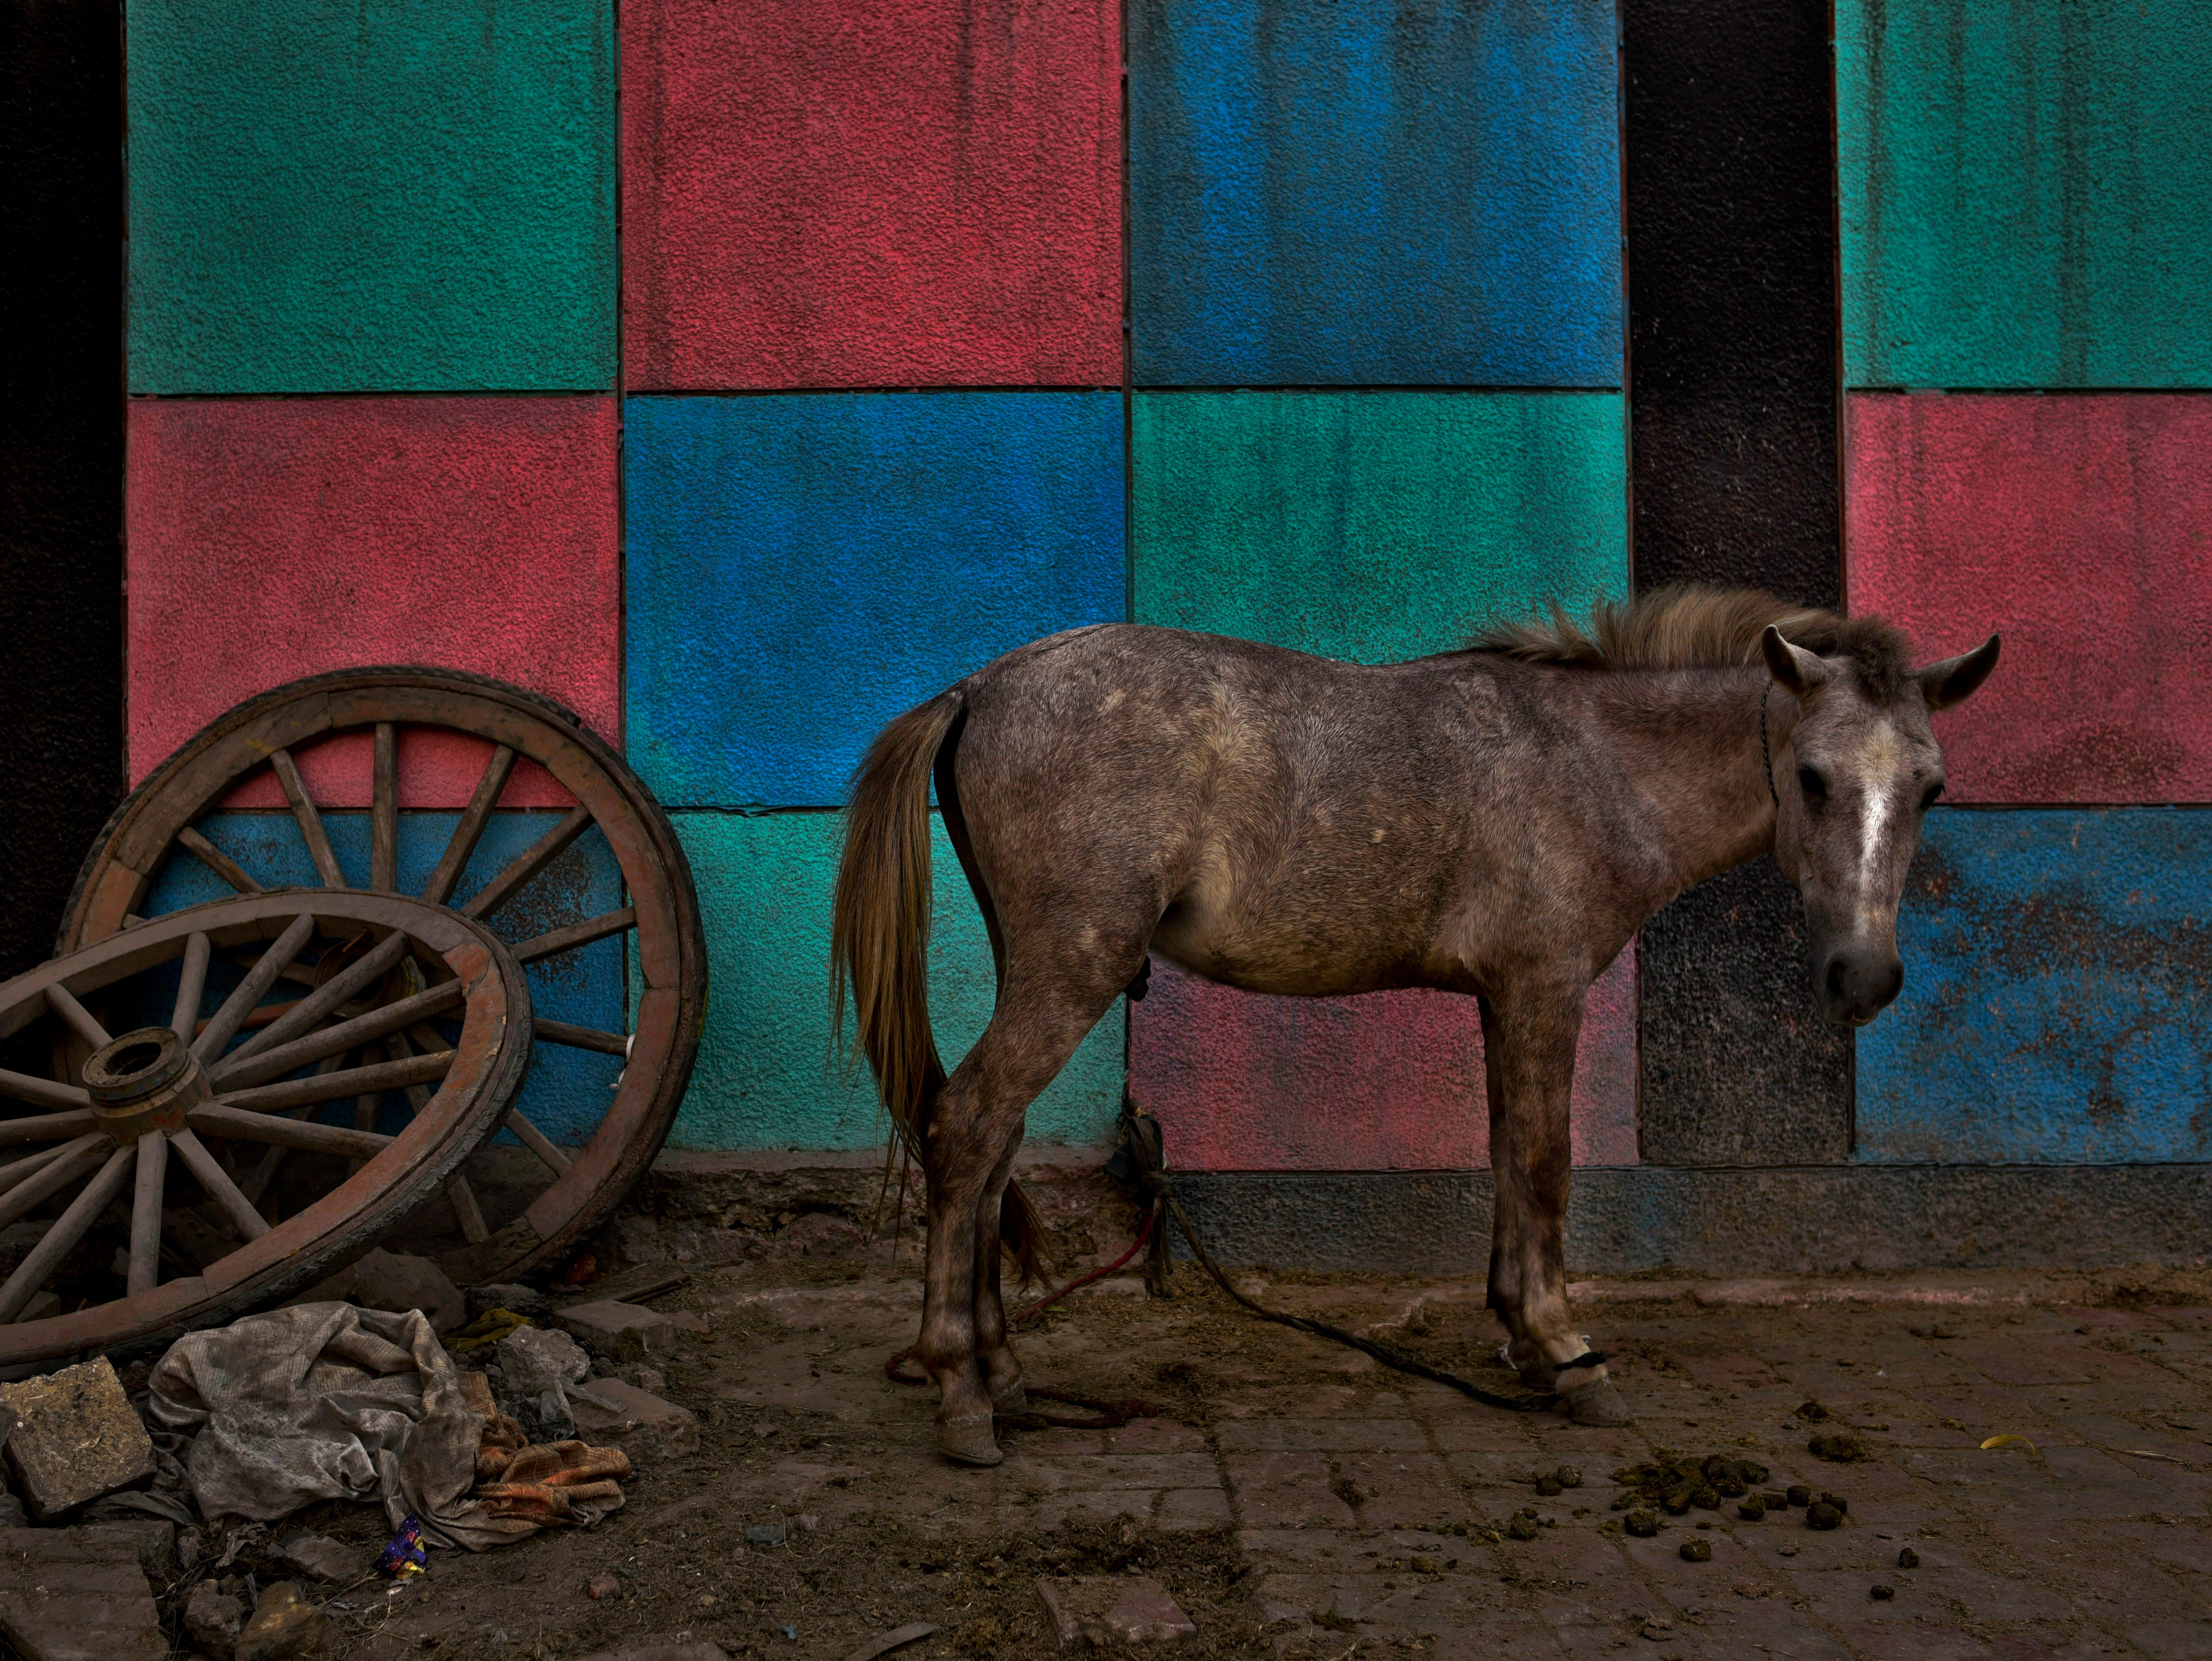 A mule waits next to color patterns painted on a school wall near the wheels of an old cart in New Delhi, India, Sunday, Oct.28, 2018. The animal is used to transport construction material and other goods.